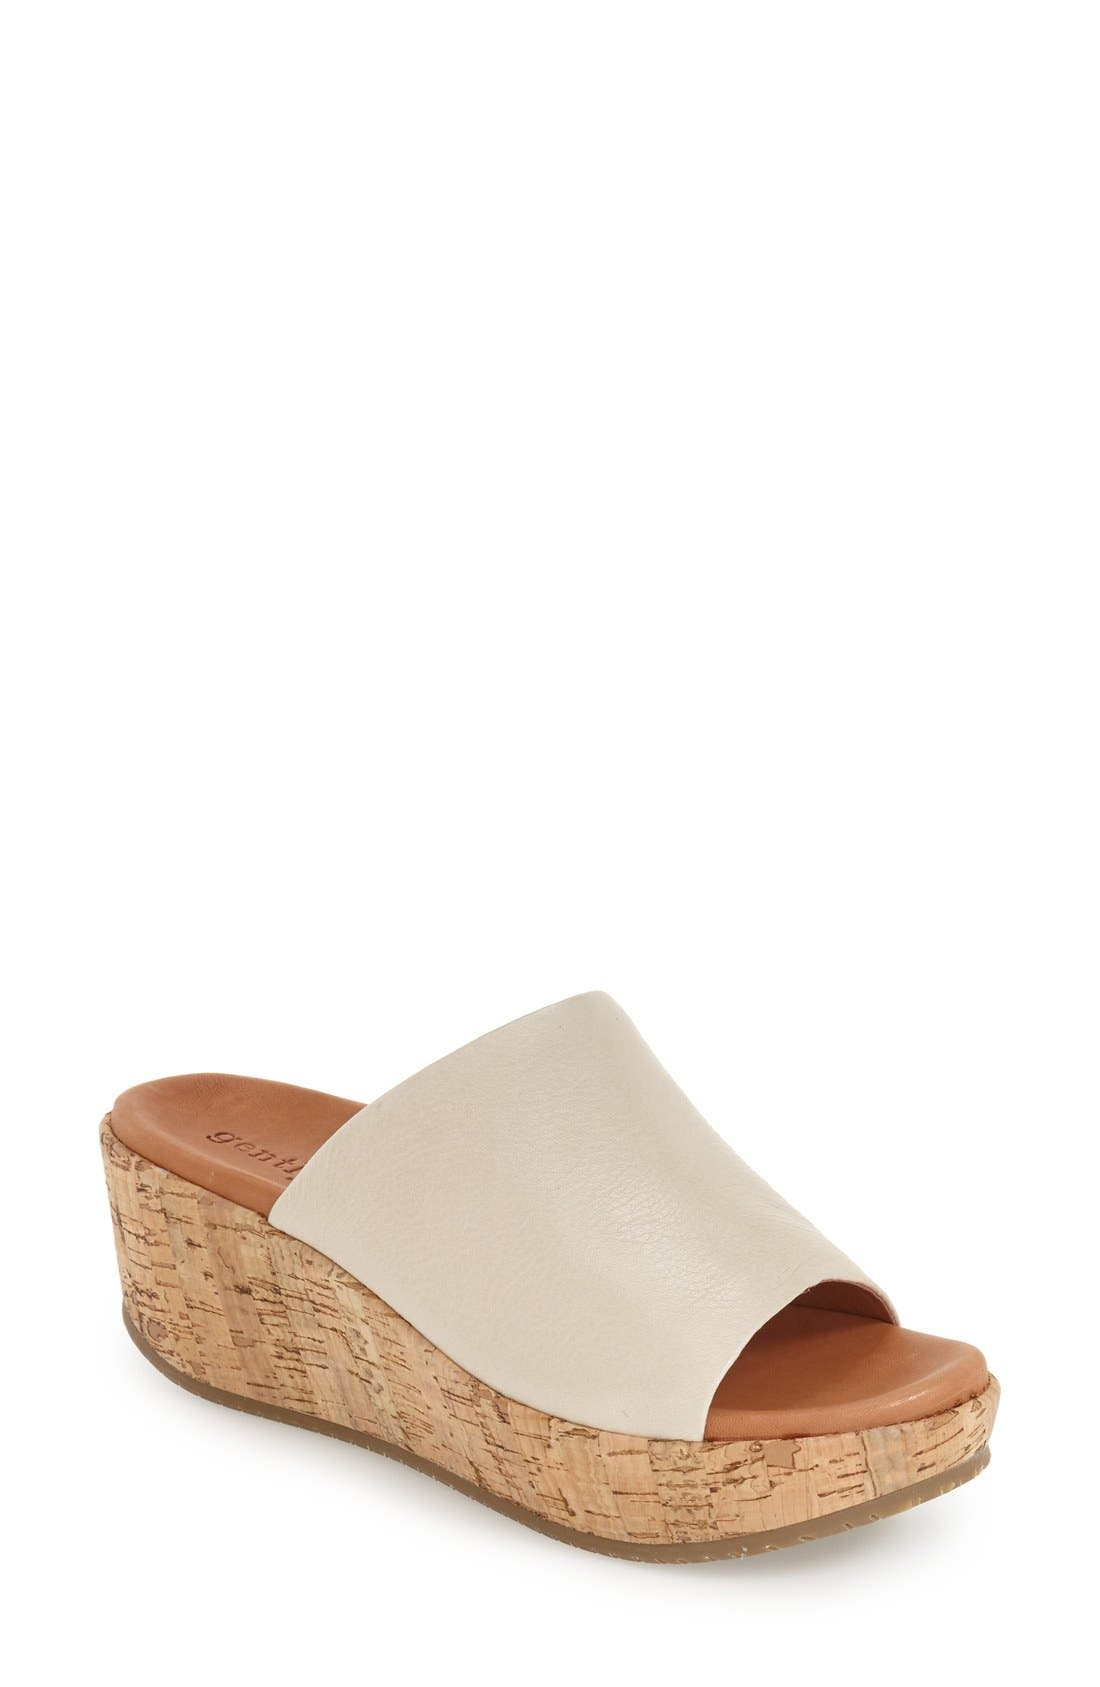 GENTLE SOULS 'Megan' Platform Wedge Sandal